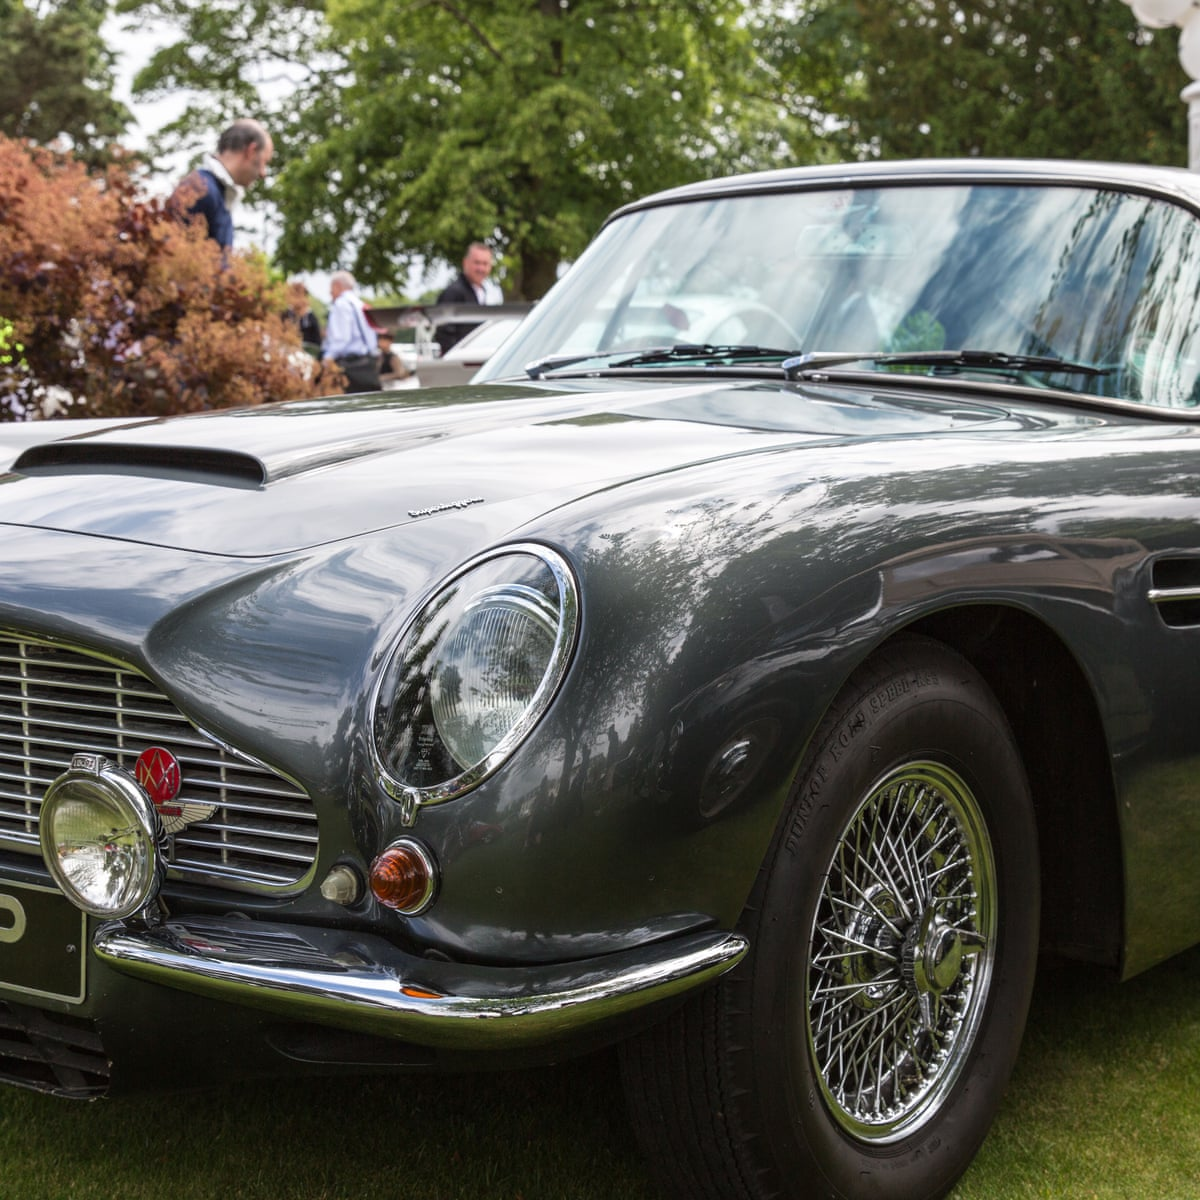 James Bond Aston Martin Db5 Sold At Auction For 5 2m James Bond The Guardian